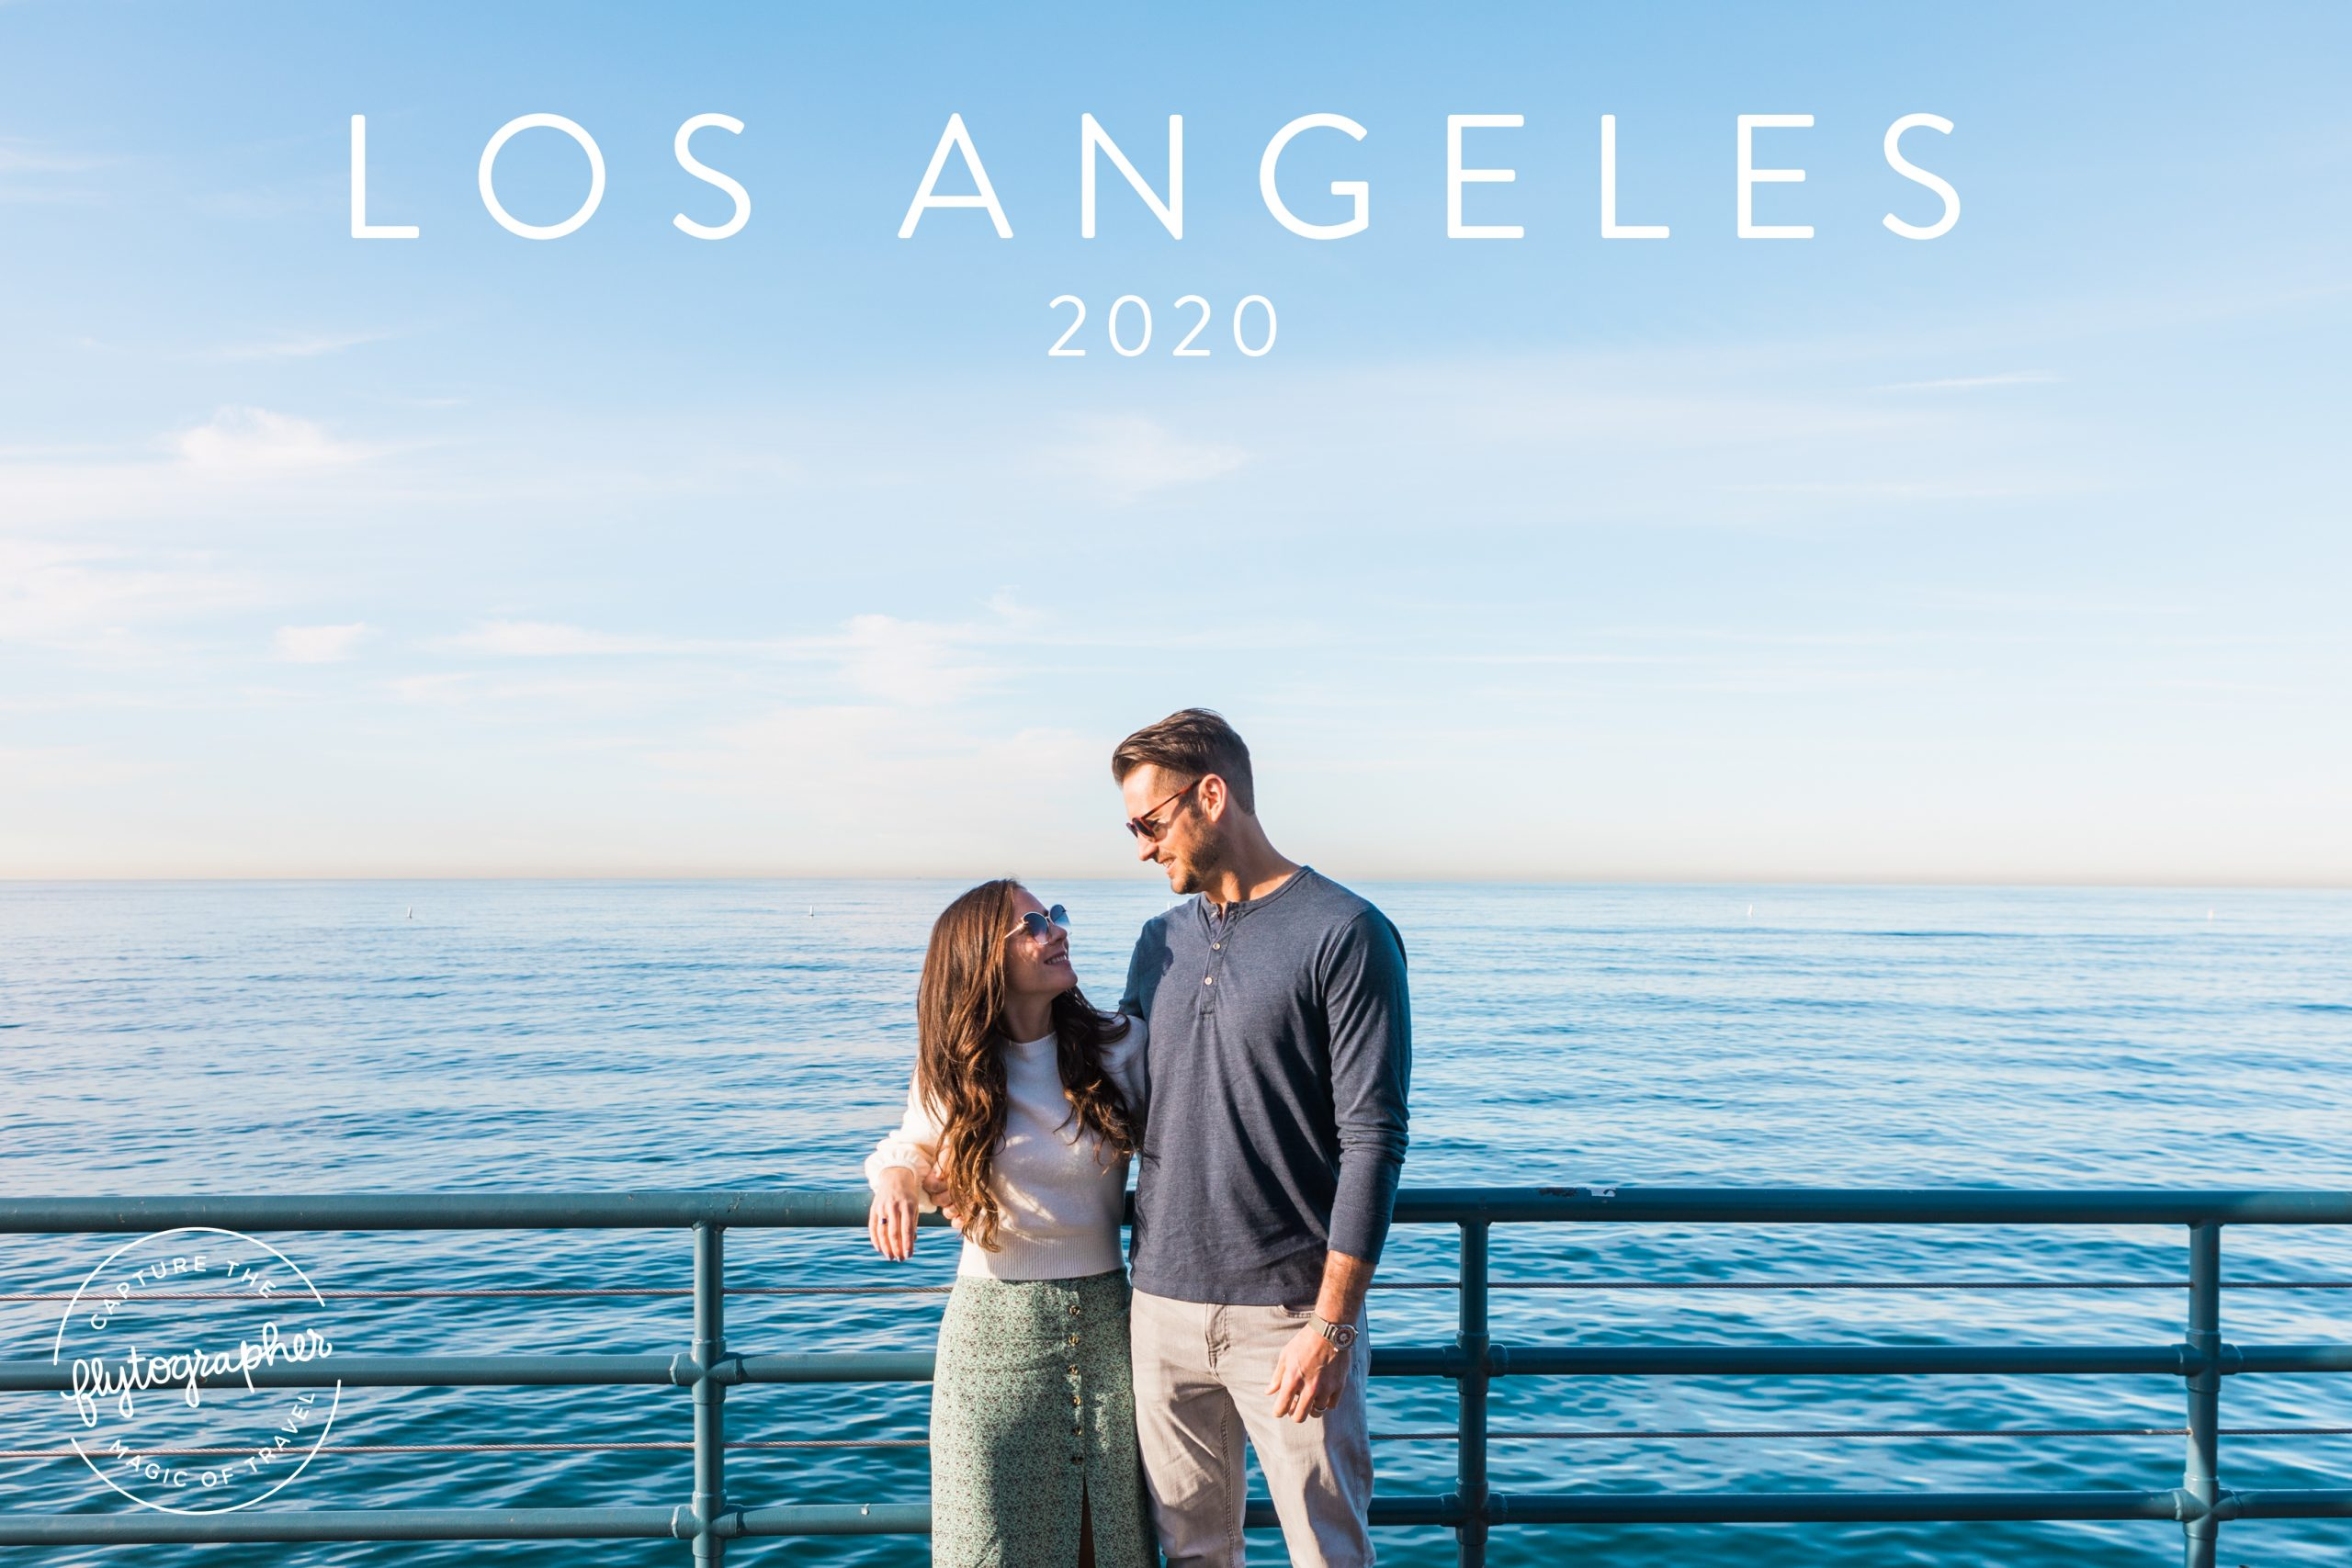 Couple smiling at one another in Los Angeles on Santa Monica Pier